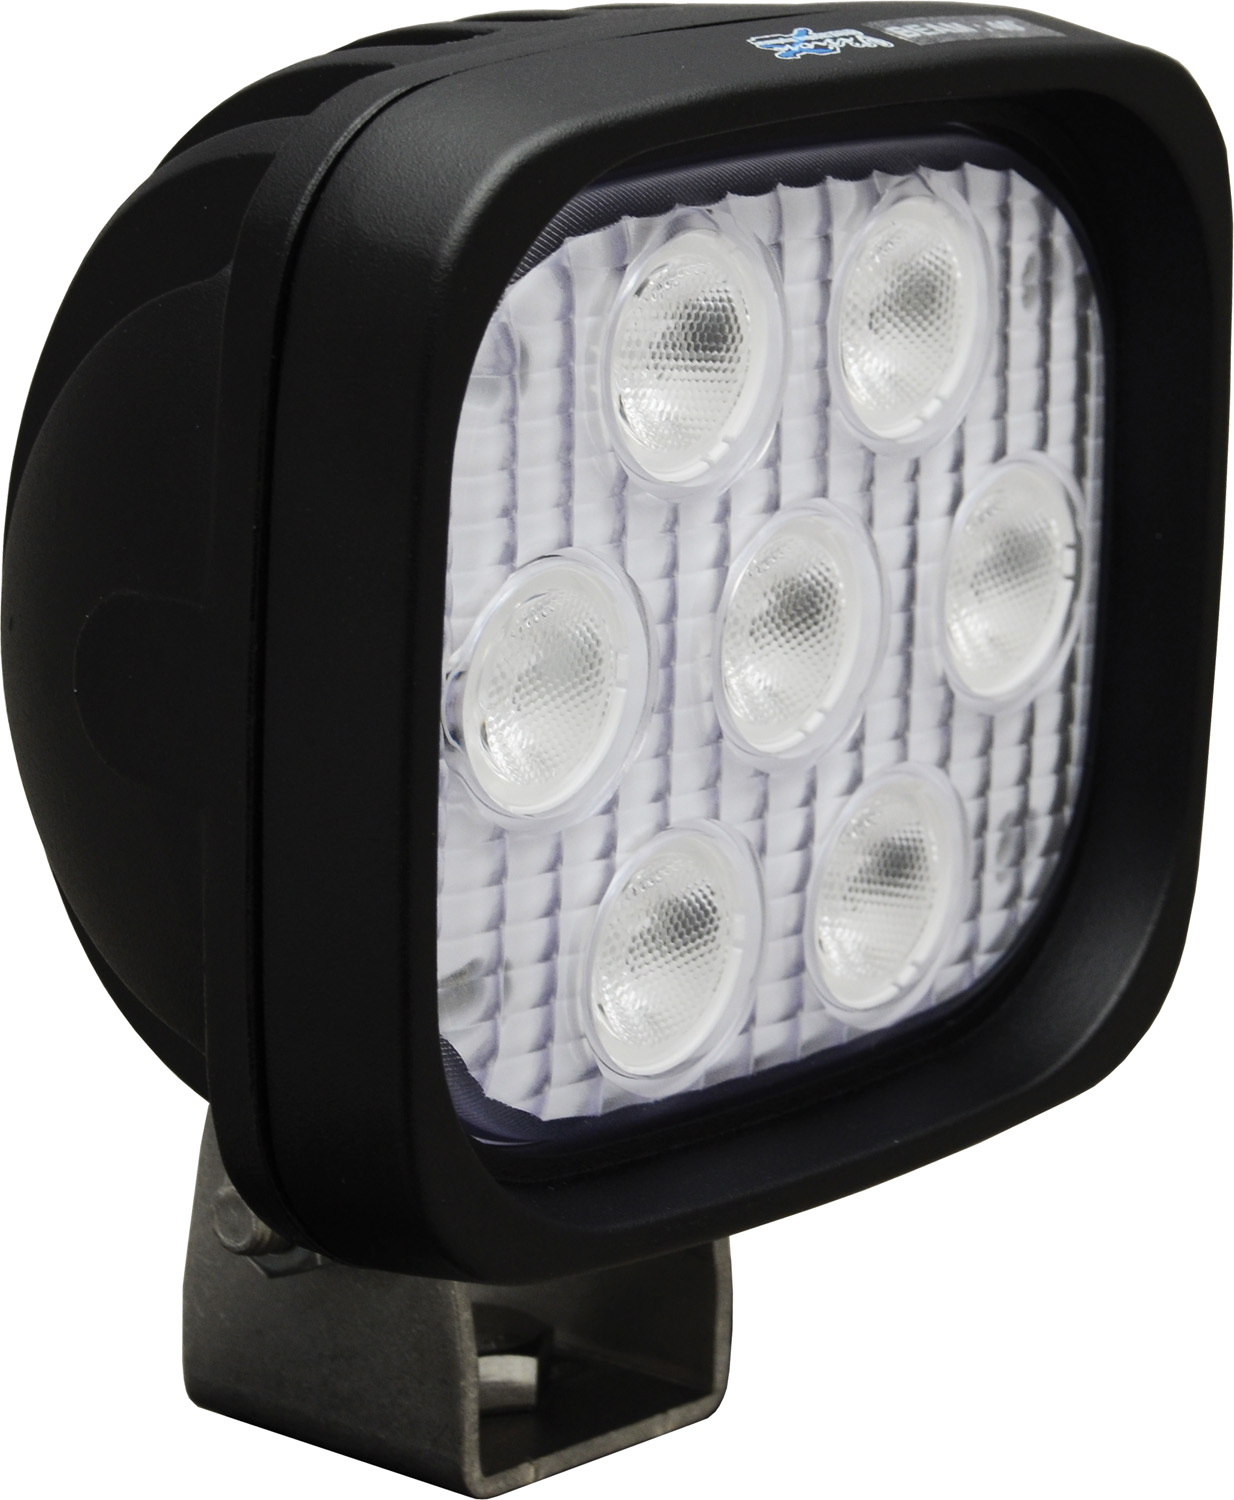 4 inch SQUARE UTILITY MARKET BLACK 7 3W LED'S 40ç WIDE